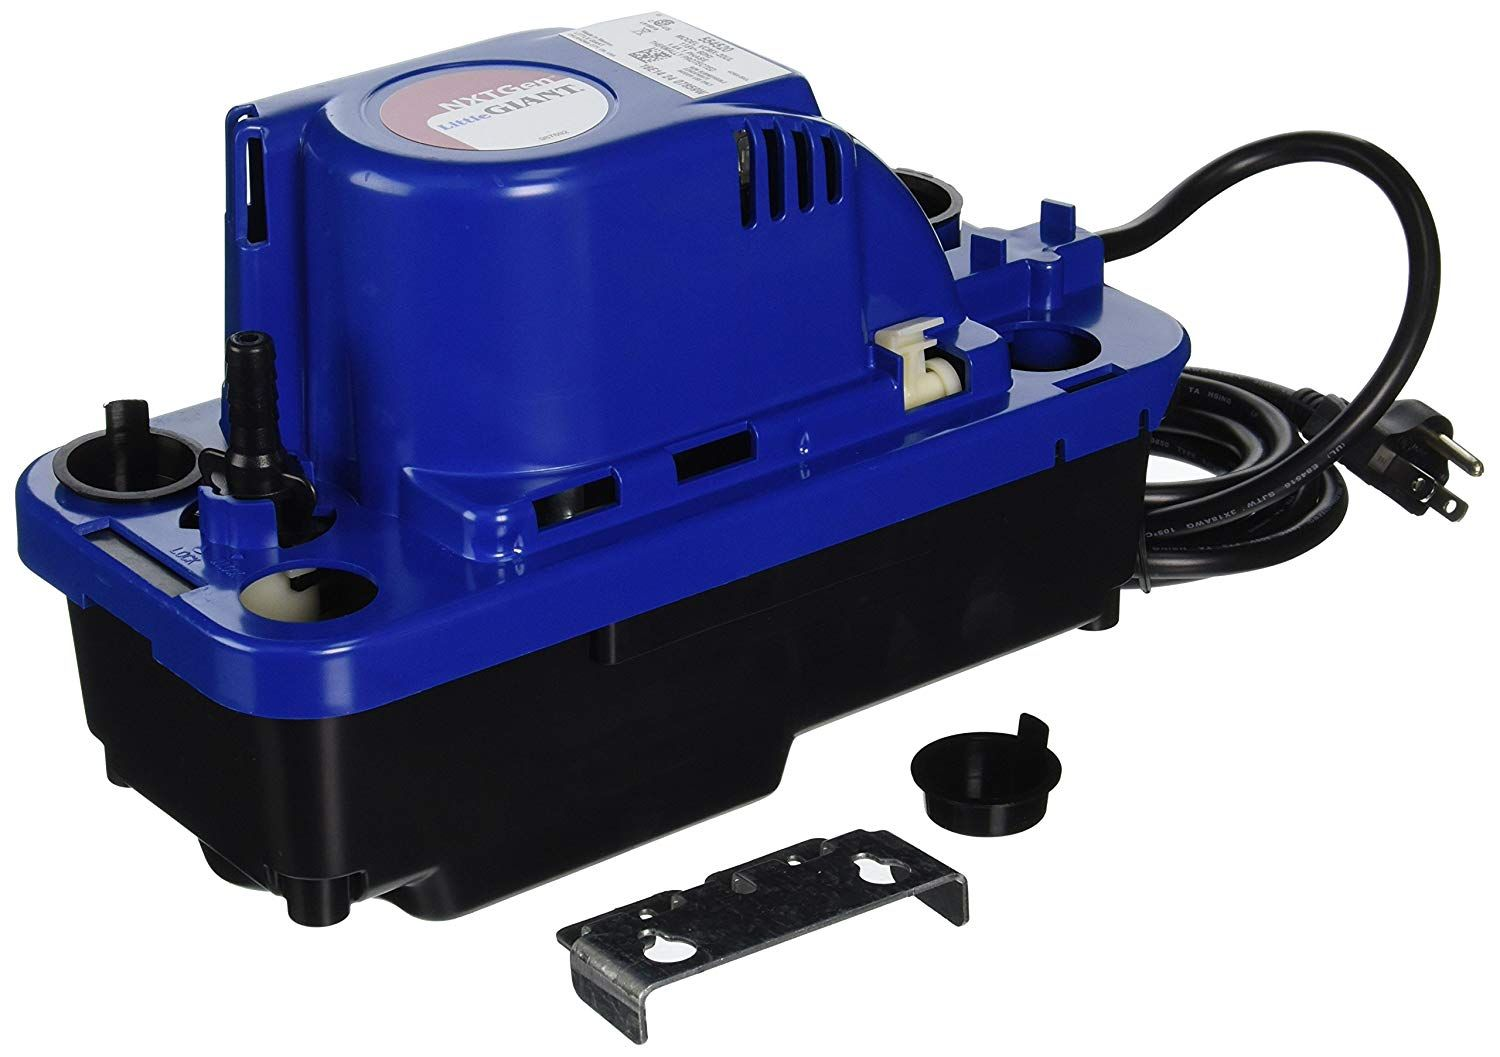 Little Giant Vcmx 20ul1 30 Hp Automatic Condensate Removal Pump 6 Power Cord 554520 Continue To The Produ Little Giants Water Pumps Power Cord